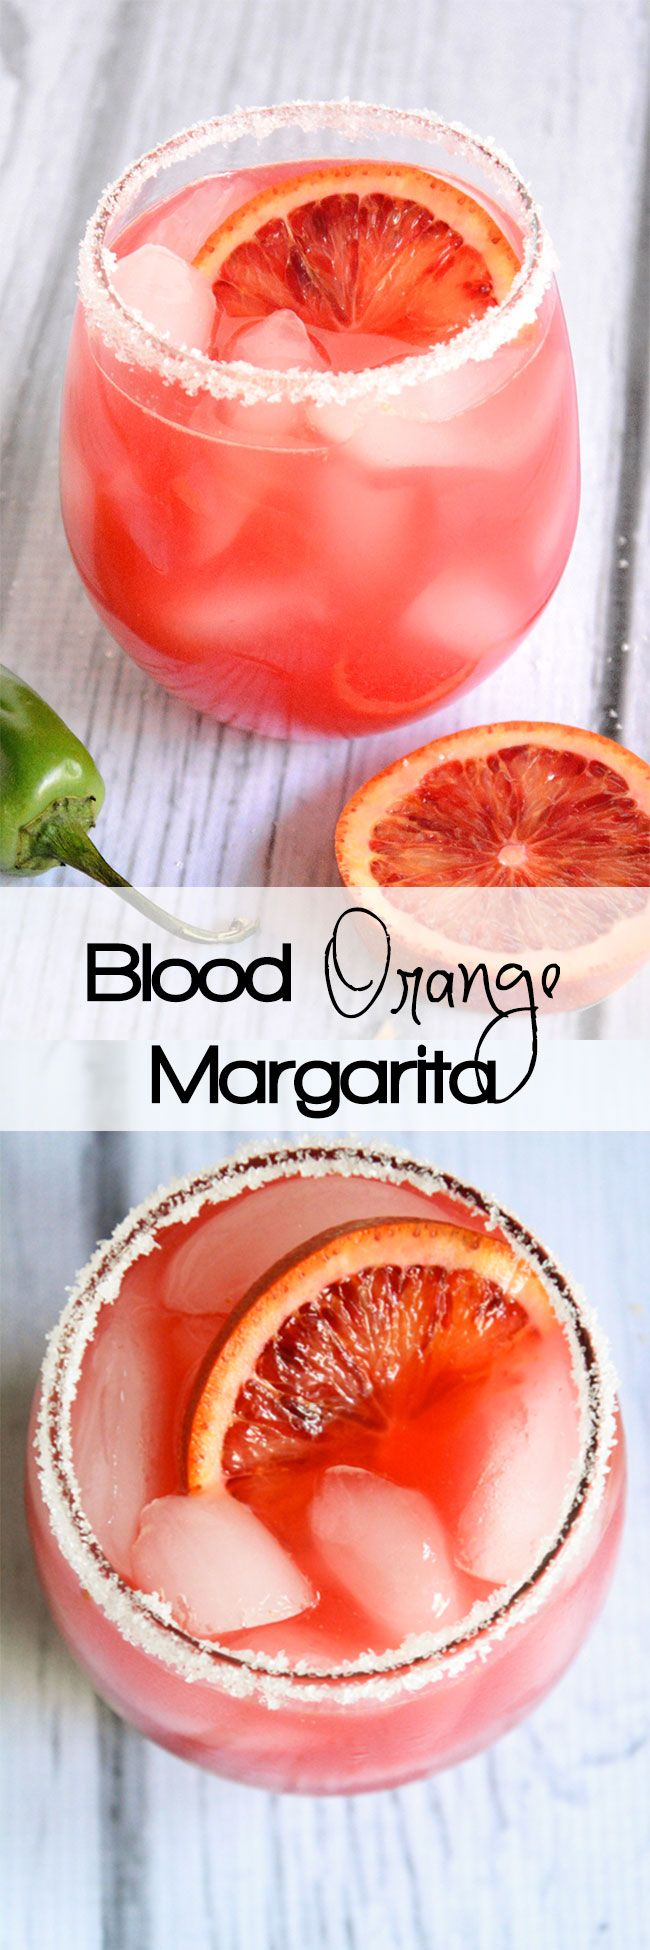 Blood Orange Margarita~ 4 oz Tequila, 2 oz Triple Sec, 6 oz fresh blood orange juice, Juice of two limes. Pinch Sugar